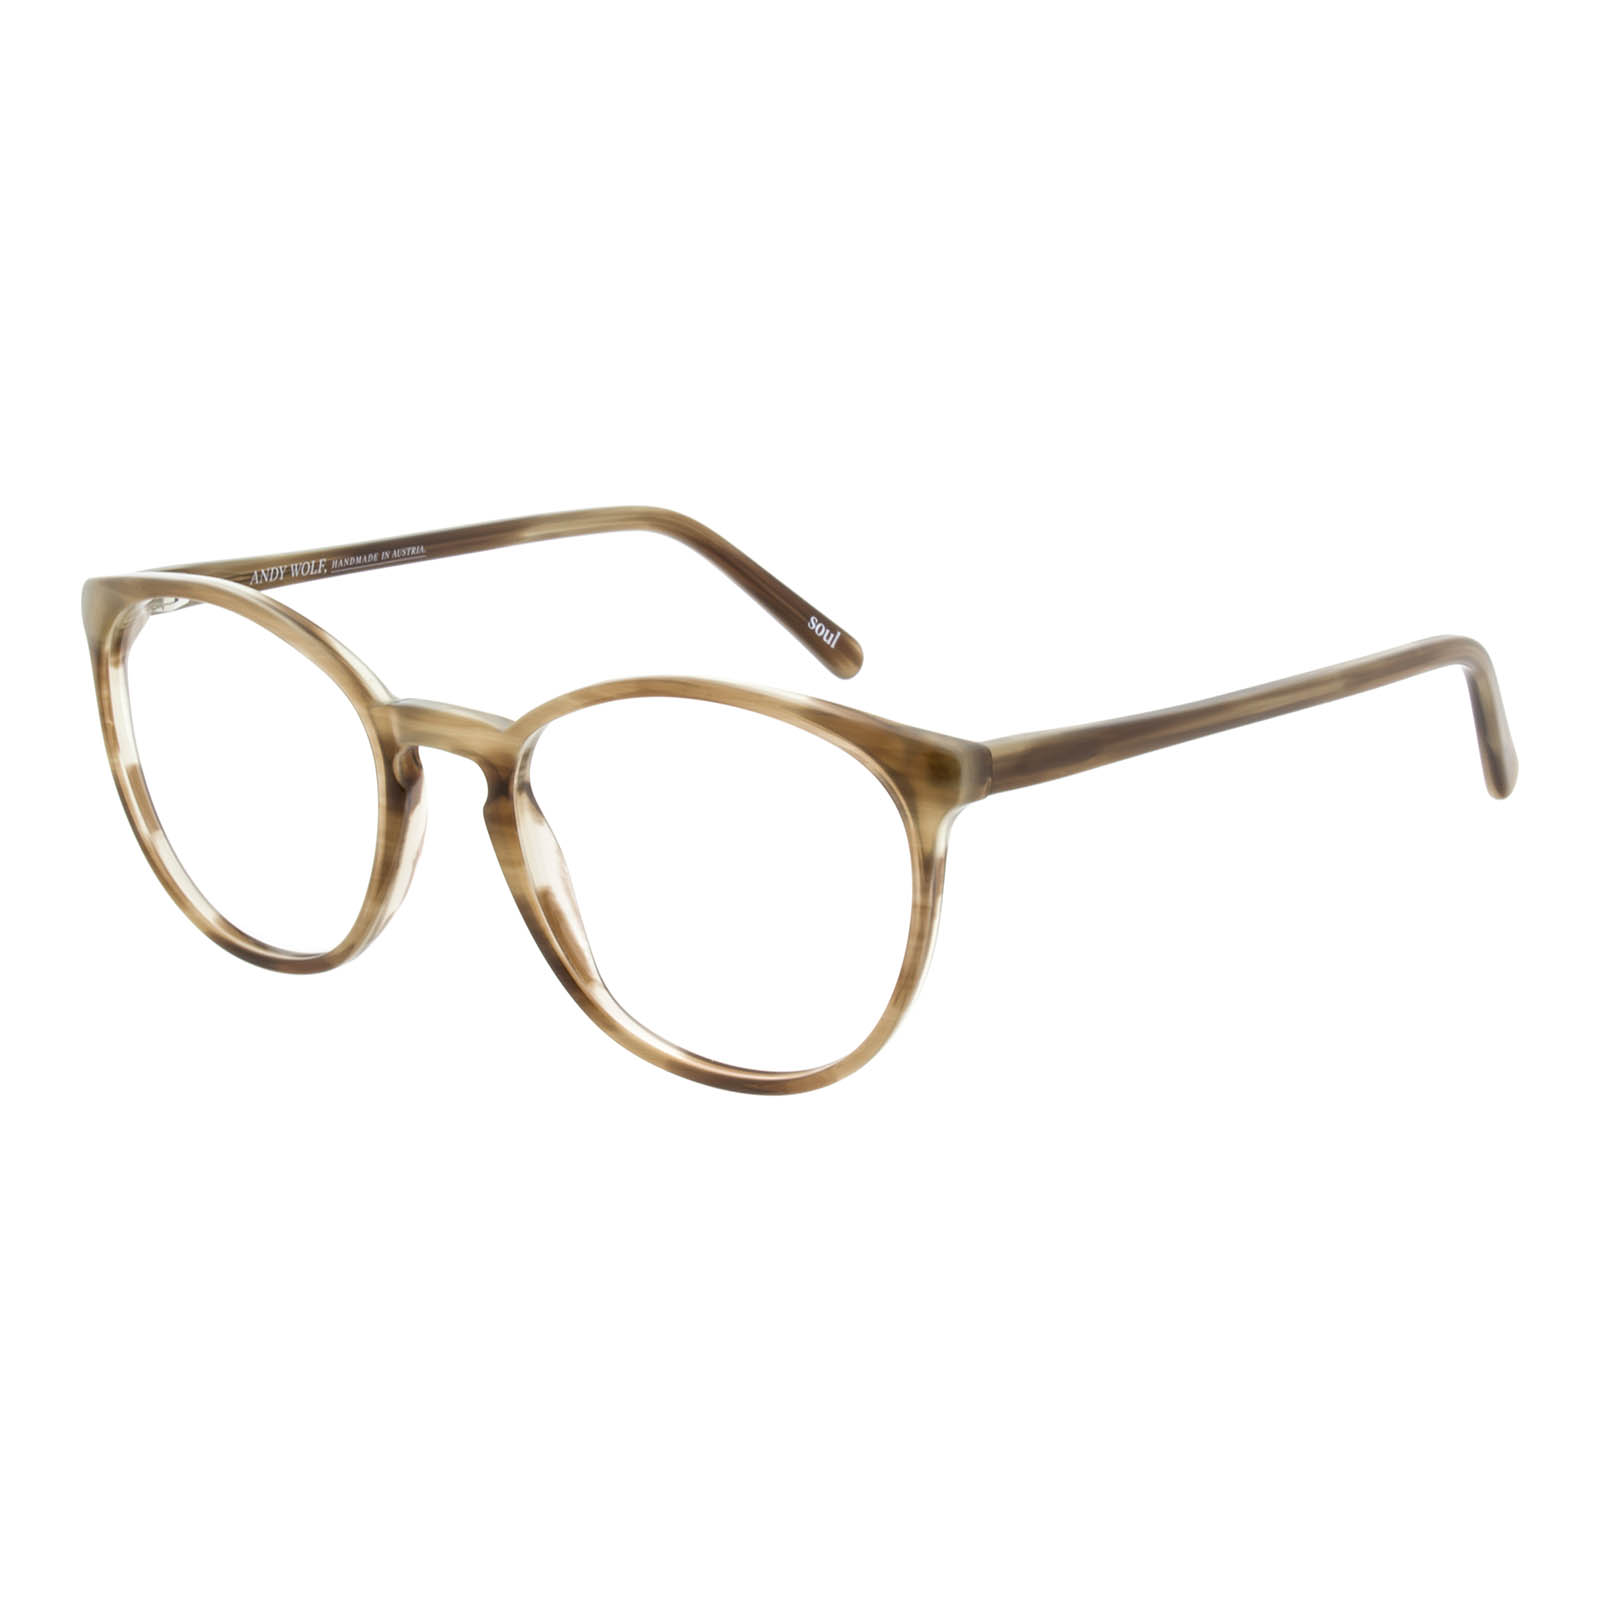 ANDY WOLF EYEWEAR_5085_E_side